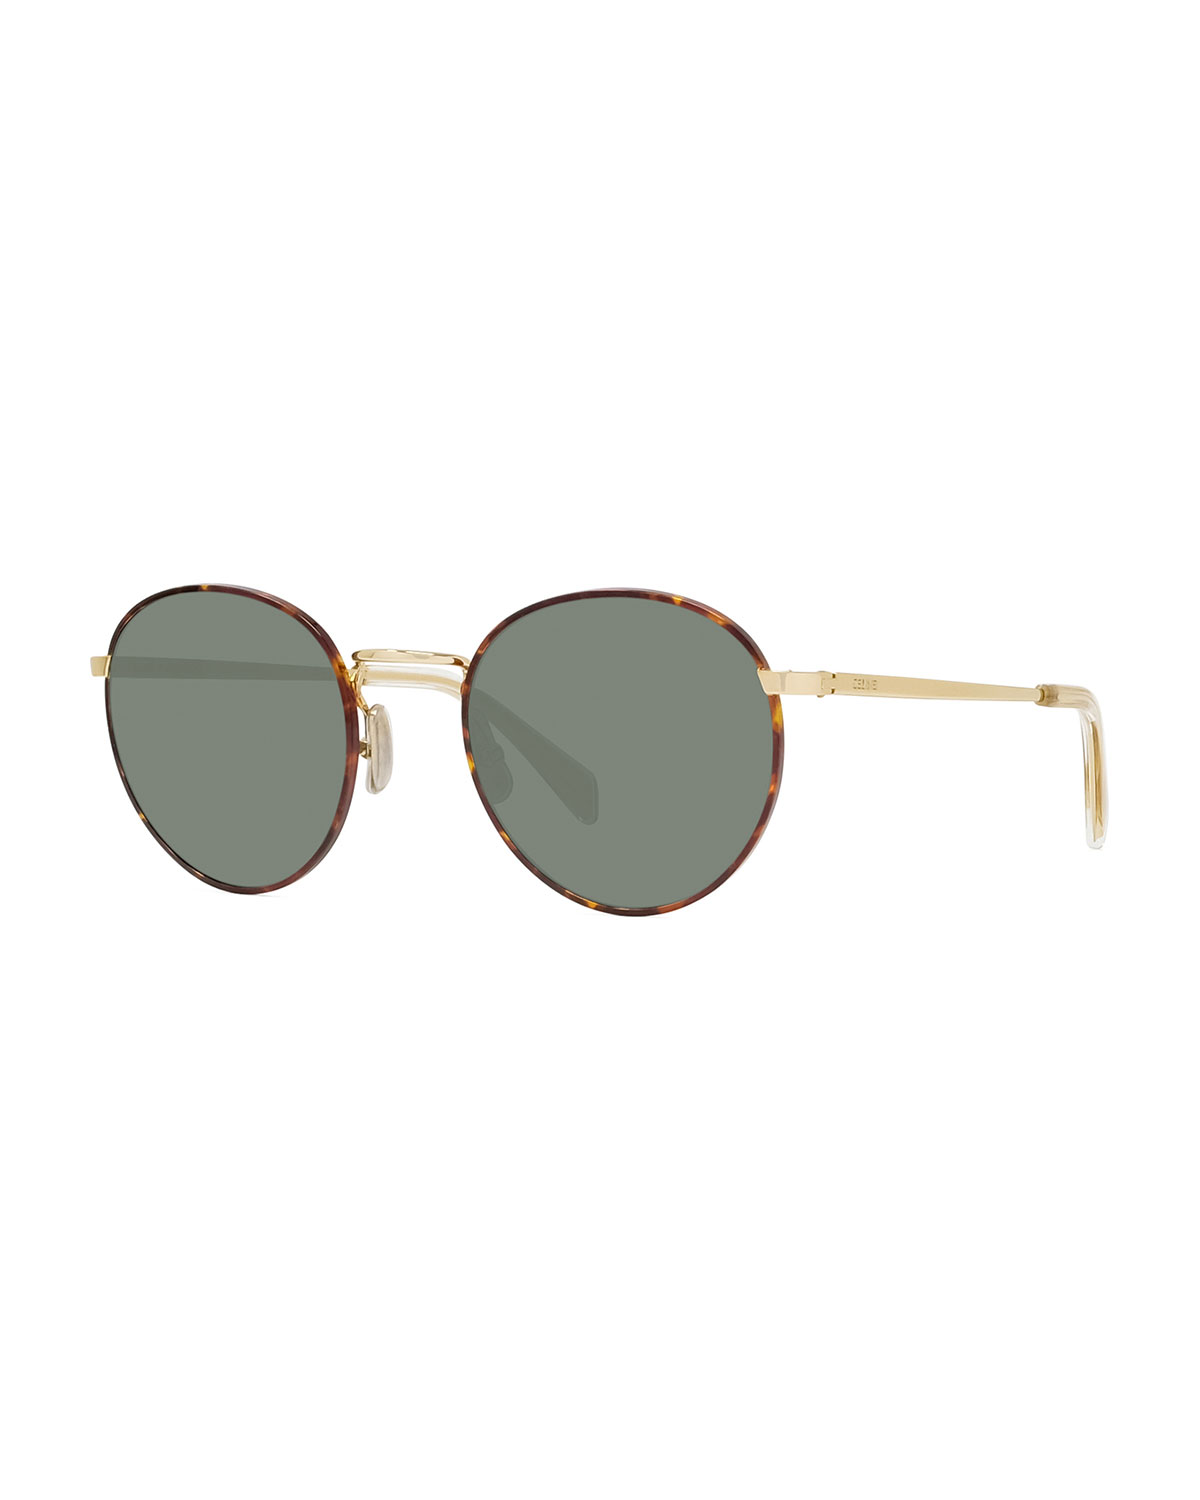 Celine Sunglasses MEN'S ROUND HAVANA ACETATE & METAL SUNGLASSES